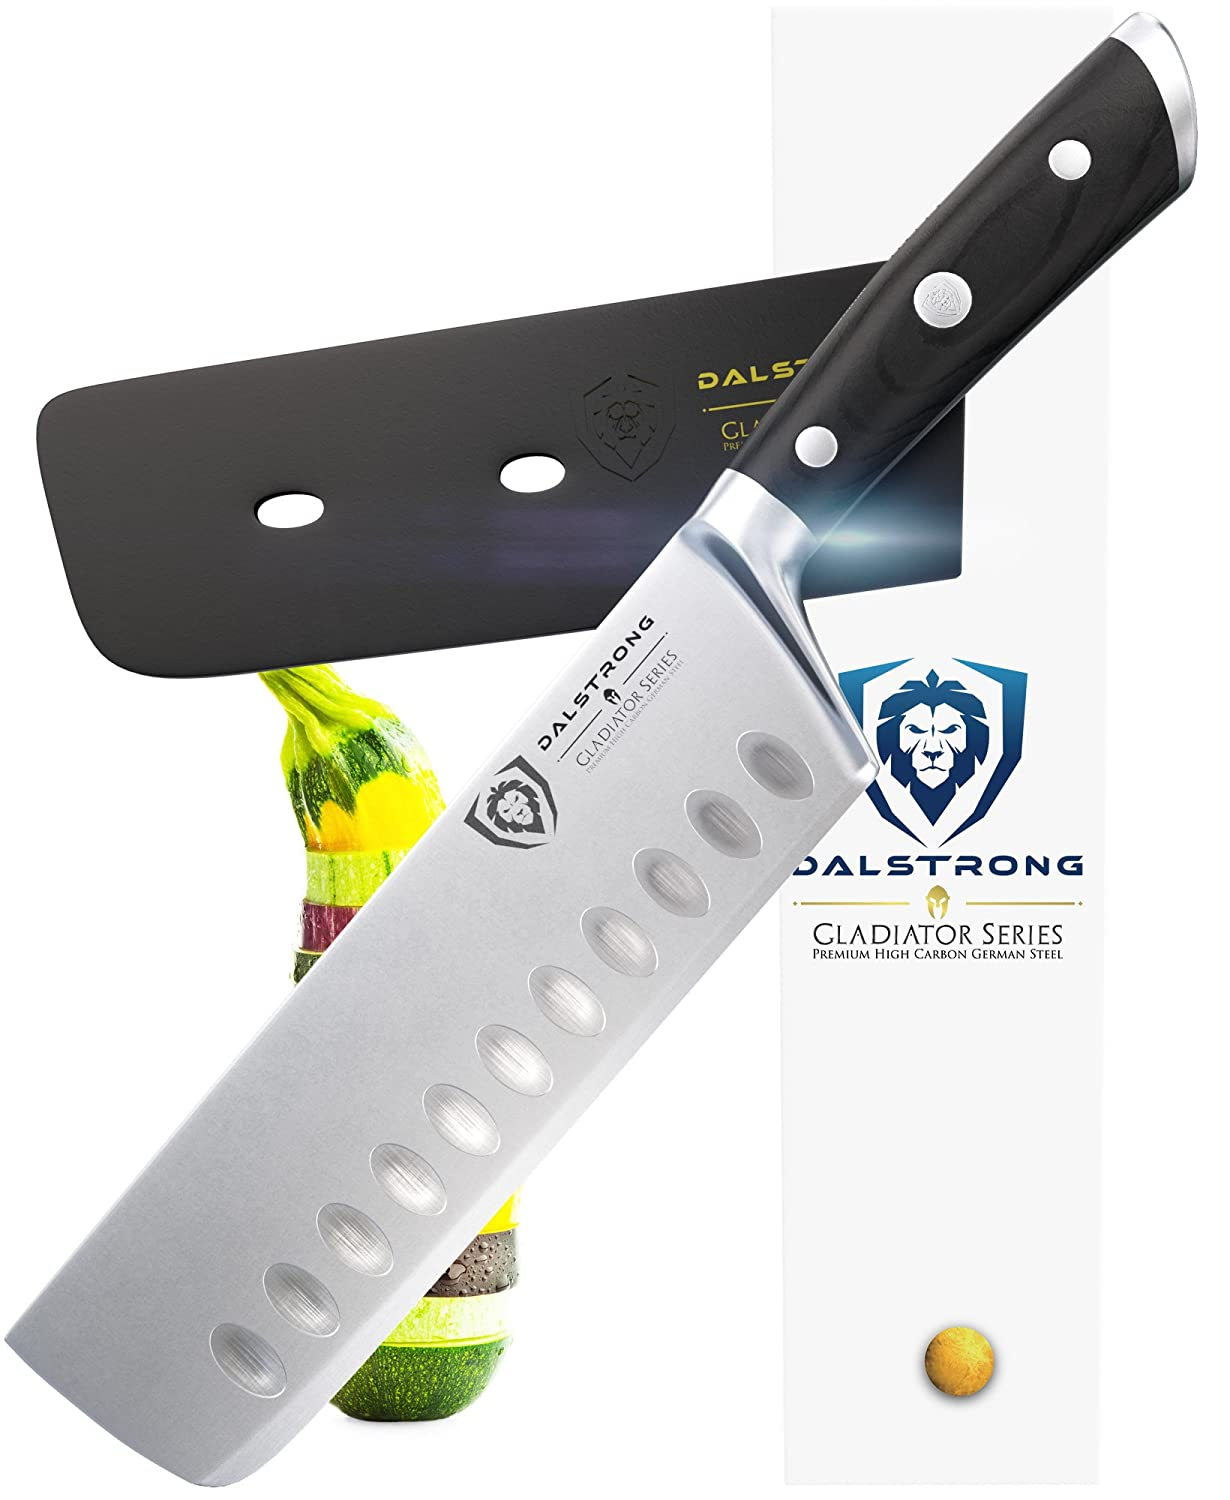 Best Chef Knives In The World 2015. best chef knives reviews of 2018 ...